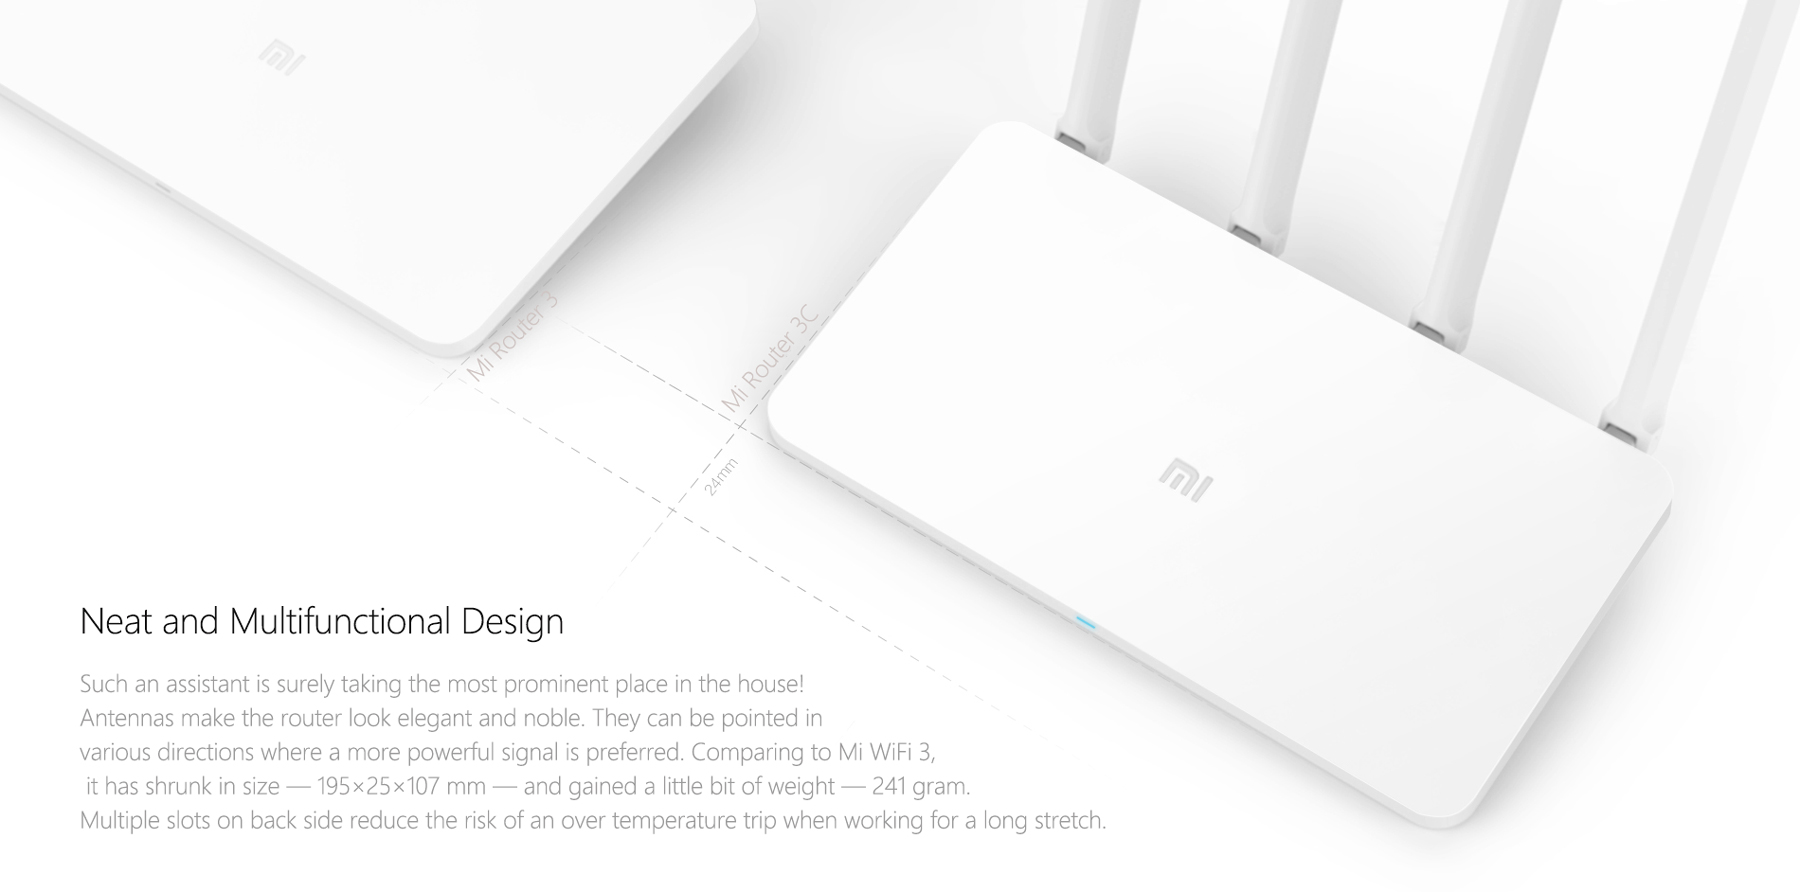 Mi 300Mbps WiFi Router 3C 16MB Rom 64MB RAM 2.4GHz MiWiFi